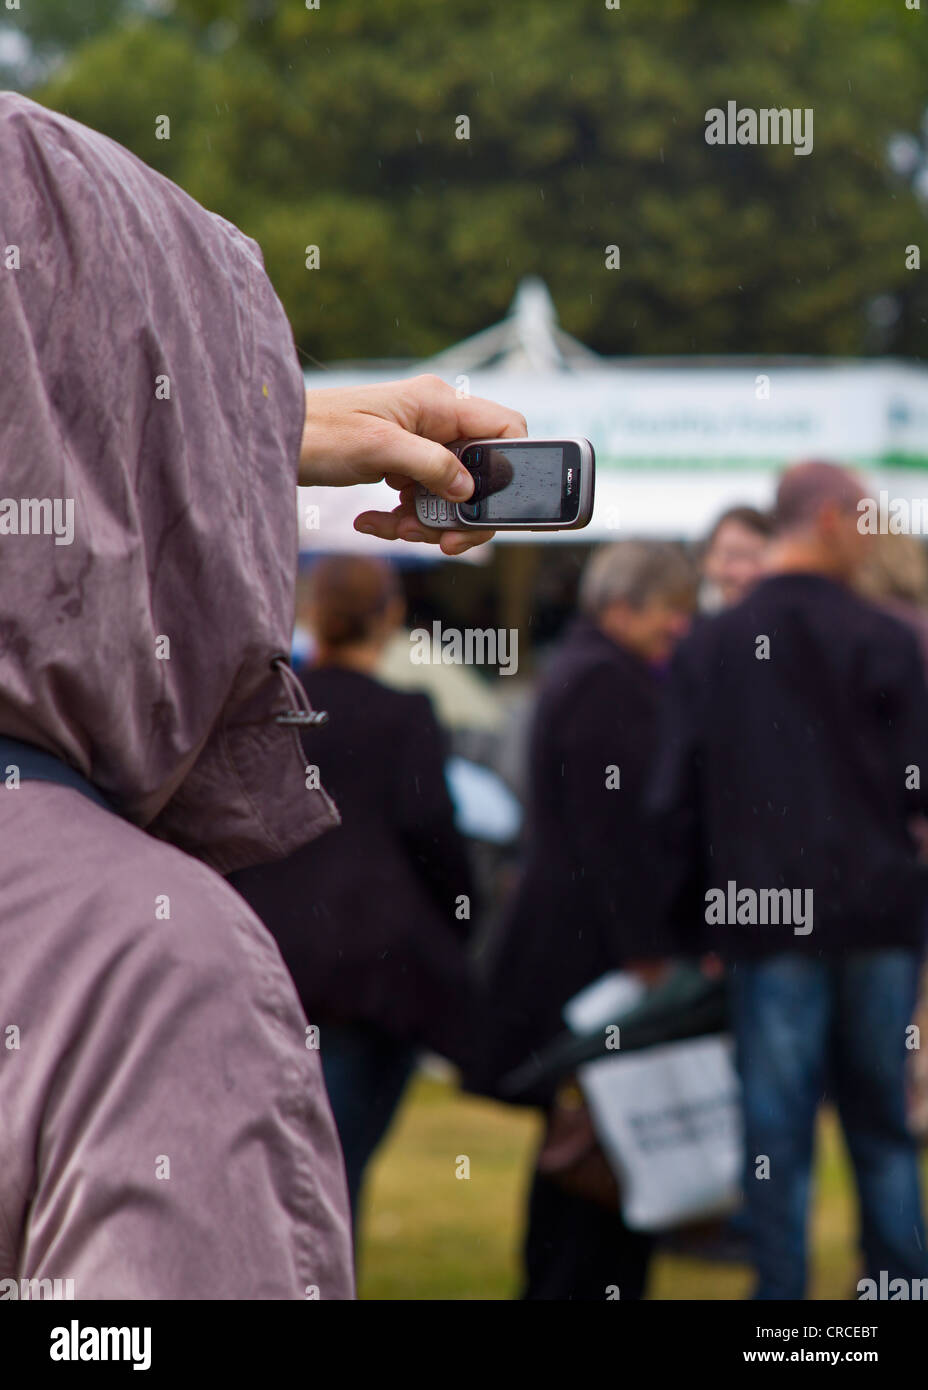 Taking a picture in the rain with a mobile phone - Stock Image